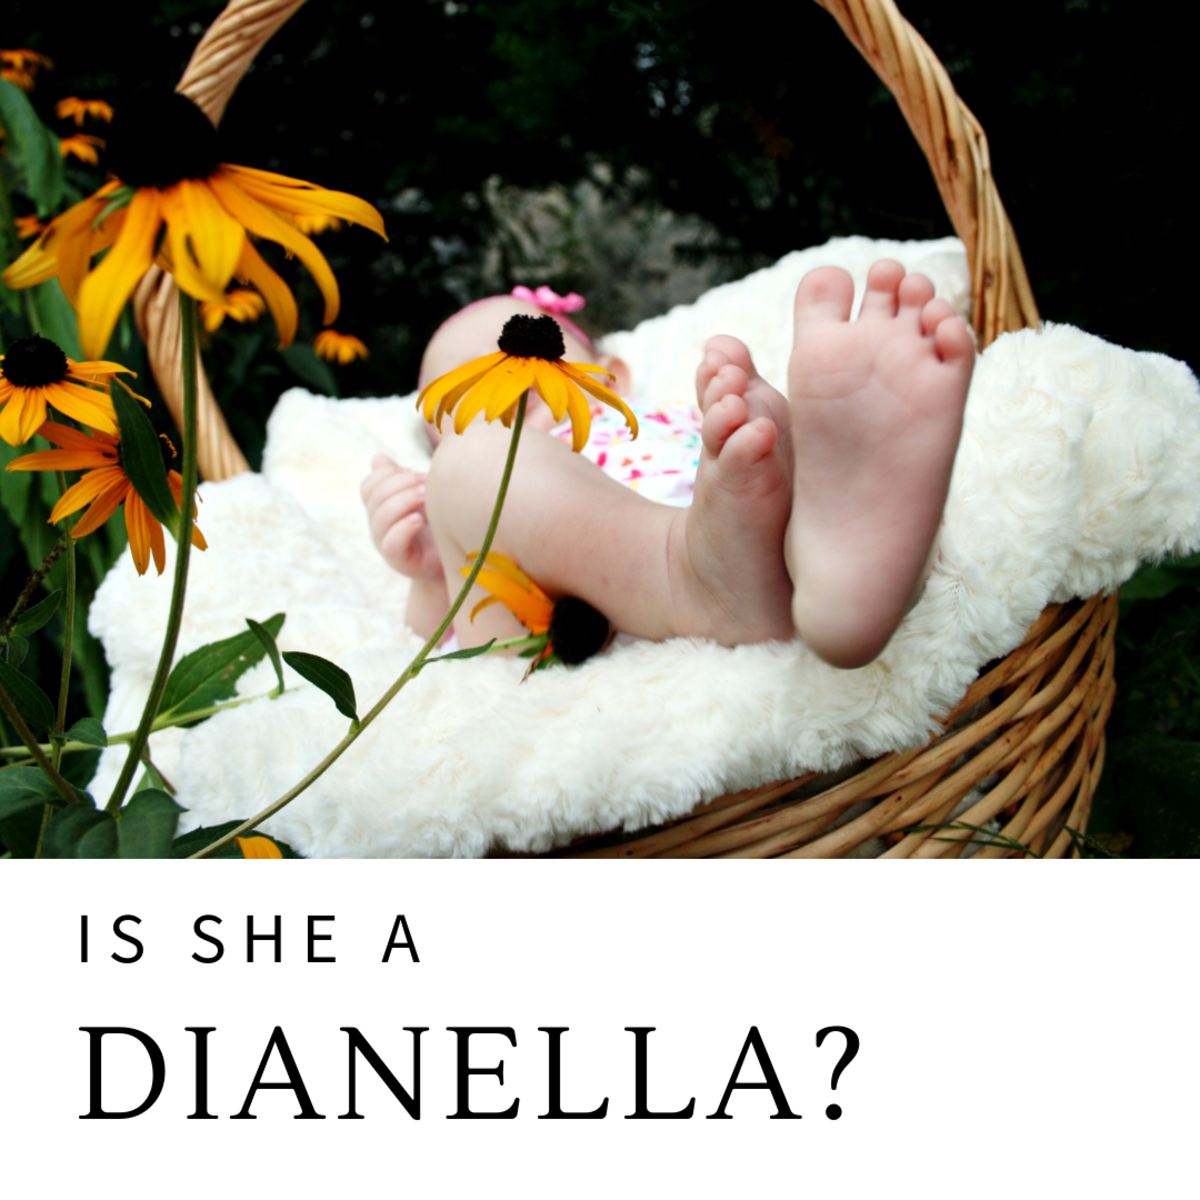 Is she a Dianella?